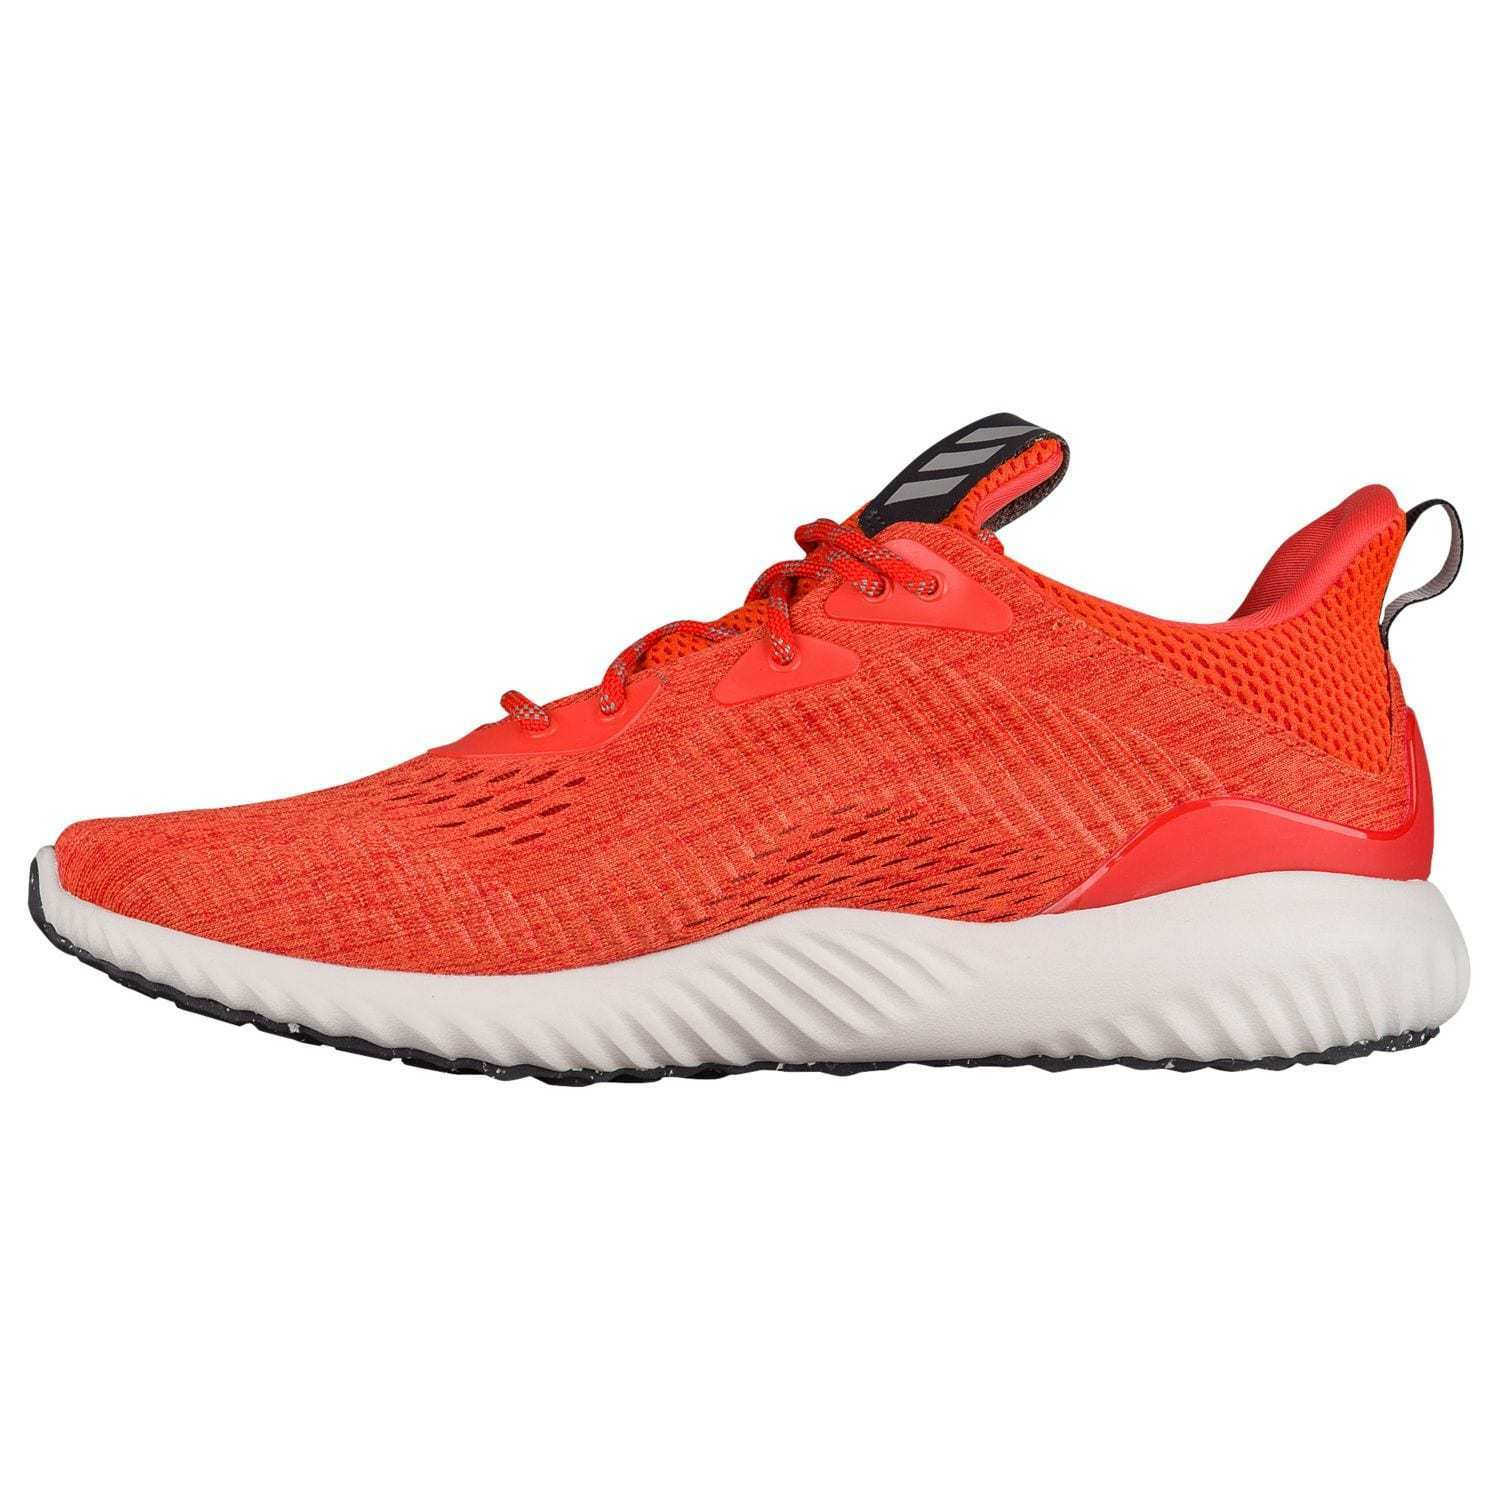 Adidas Herren Alphabounce gr. EM Blaze Orange by4424 gr. Alphabounce UK 8 - 13 493ada